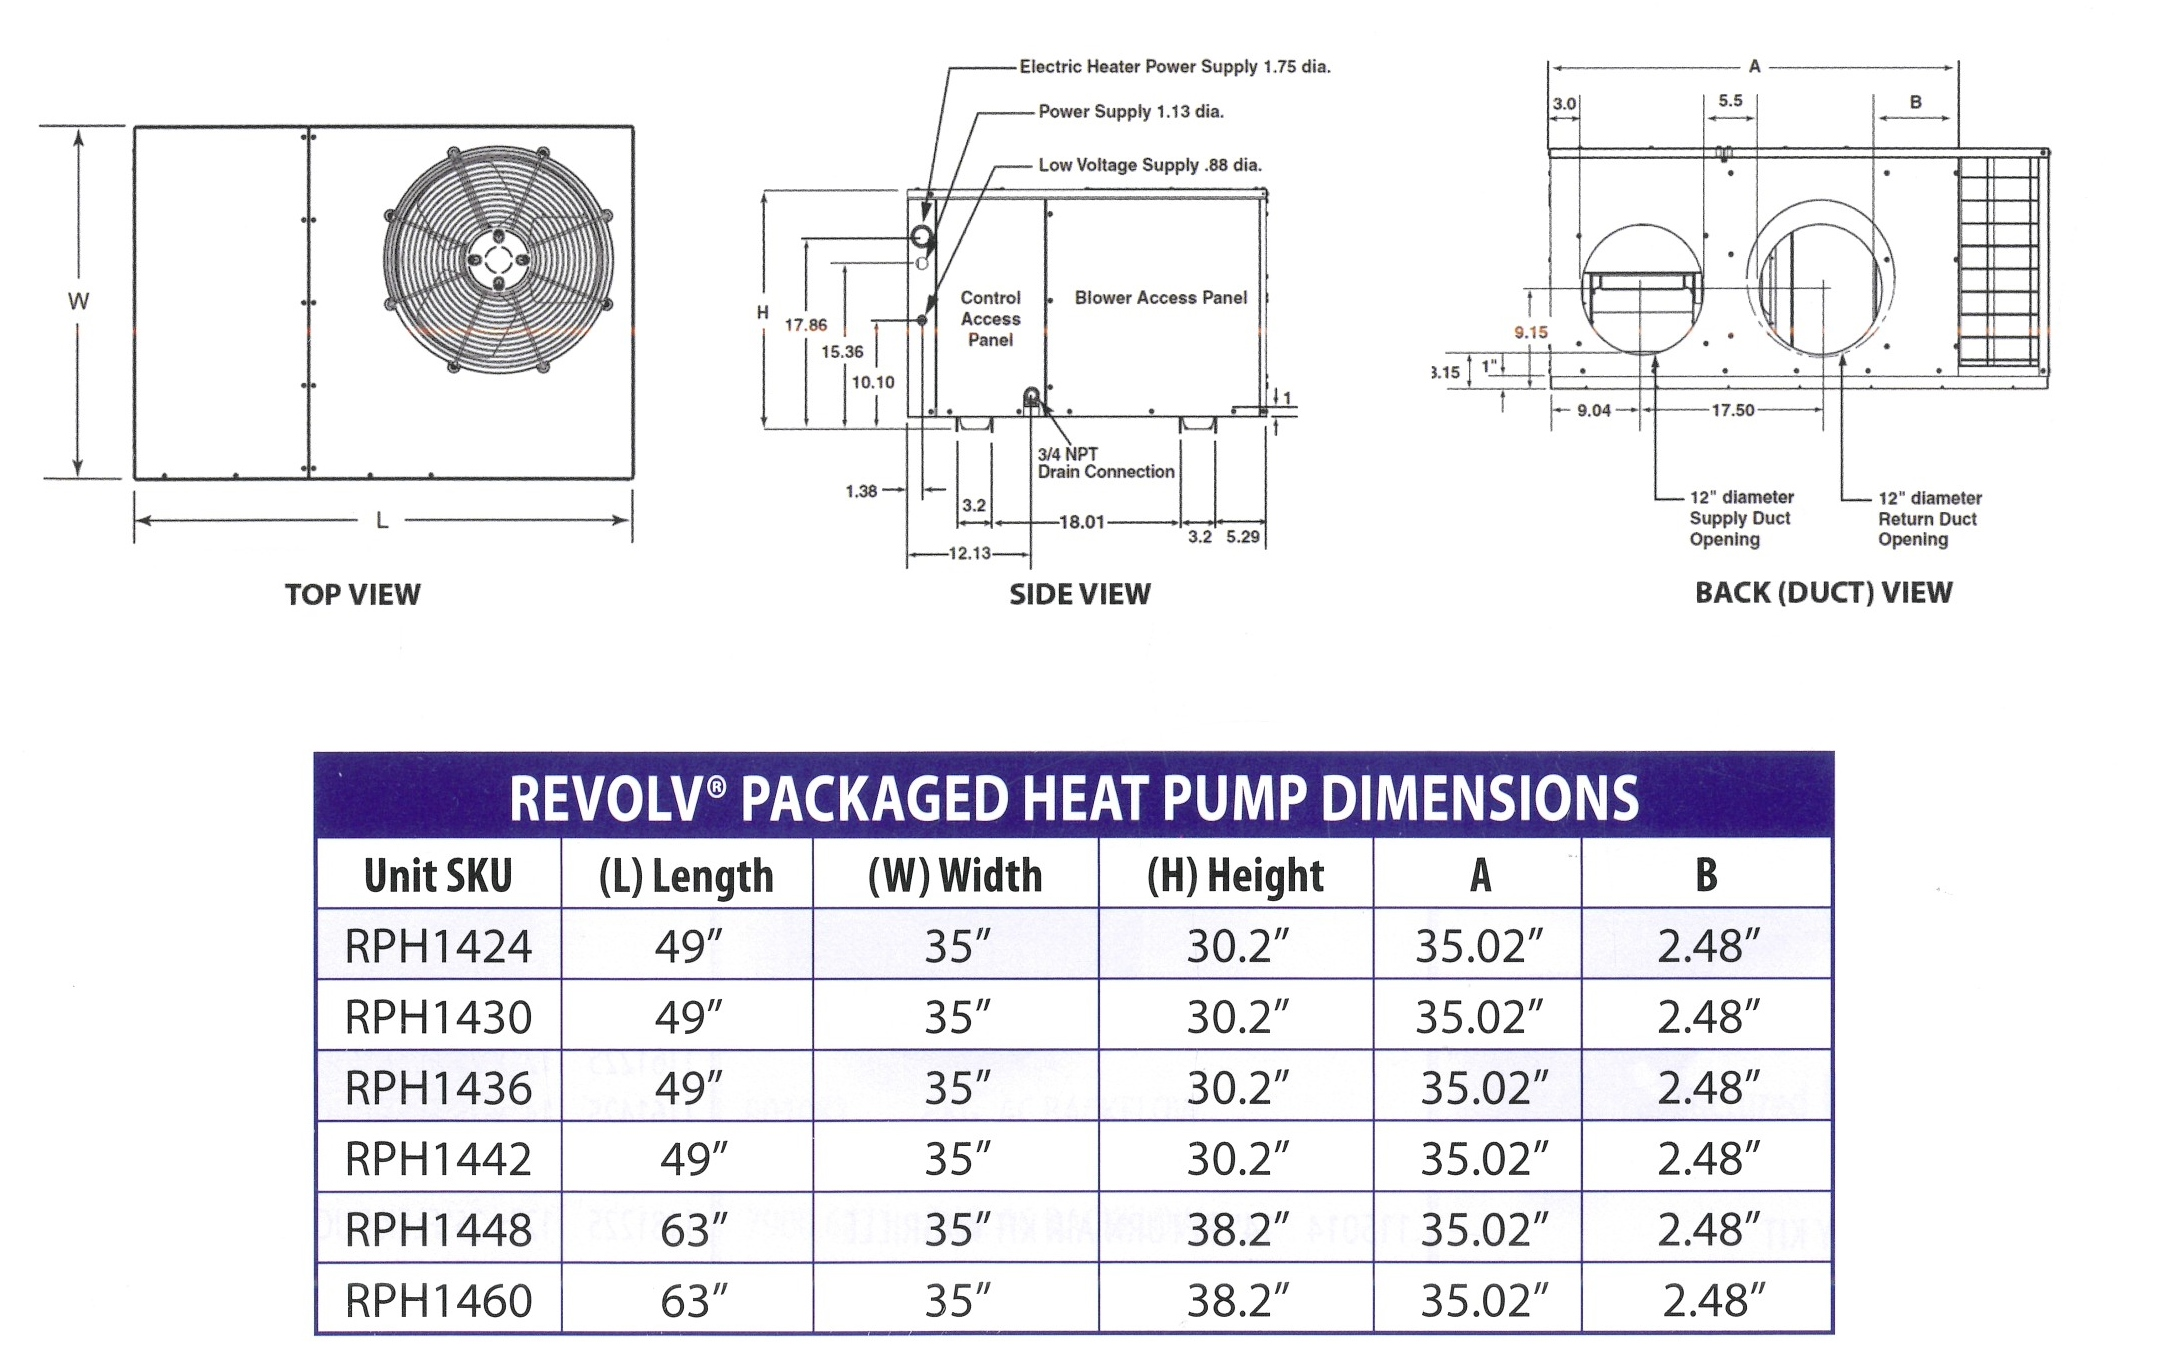 REVOLV PACKAGED HEAT PUMP DIMENSIONS